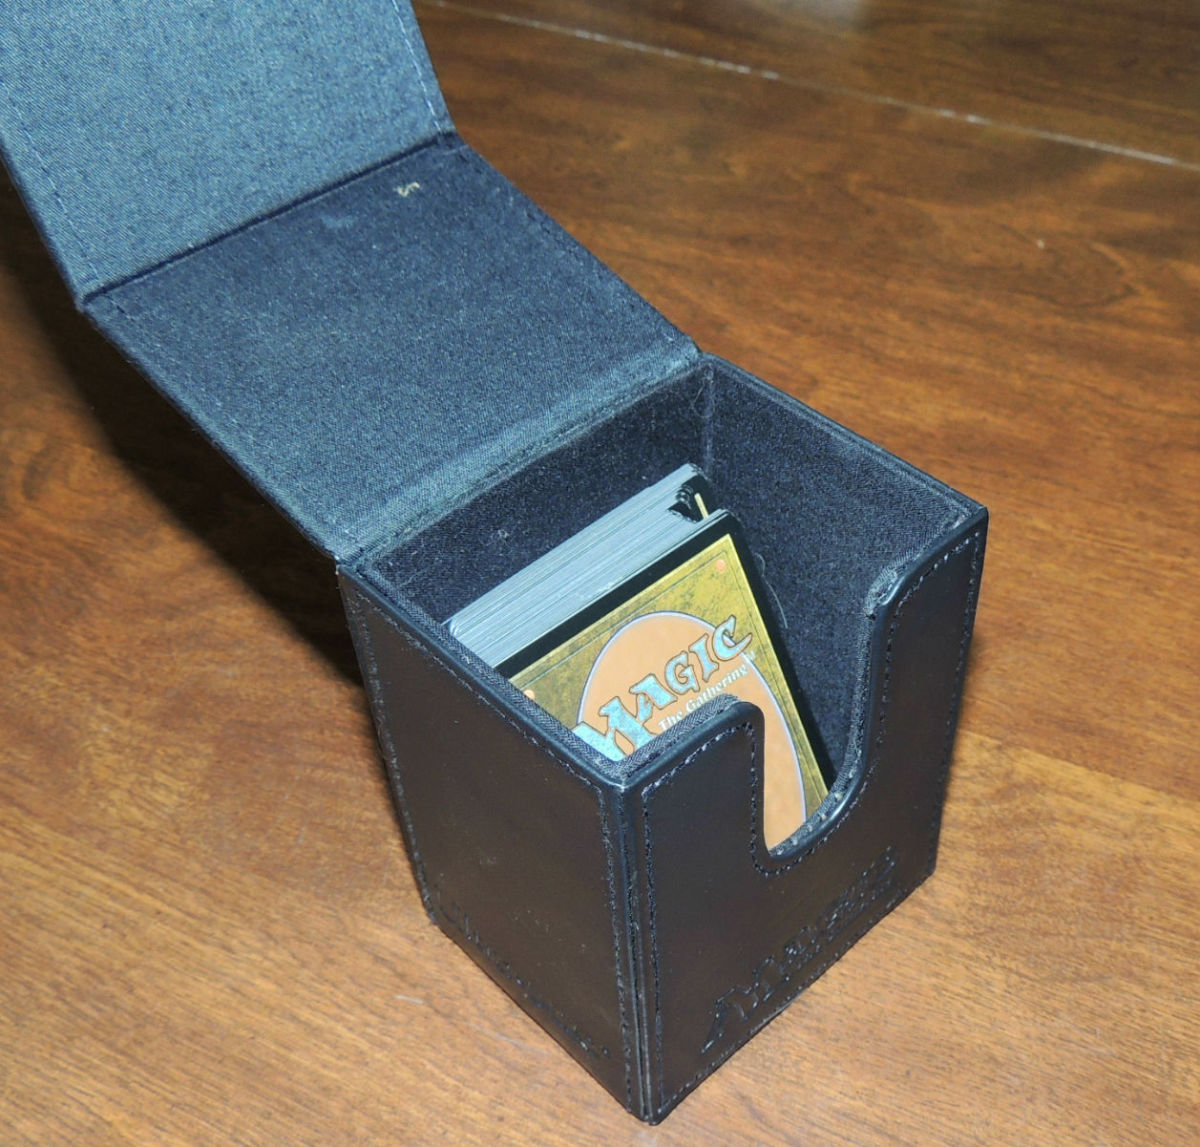 This deck box is solid and is the perfect solution for storing a deck of Magic the Gathering Cards